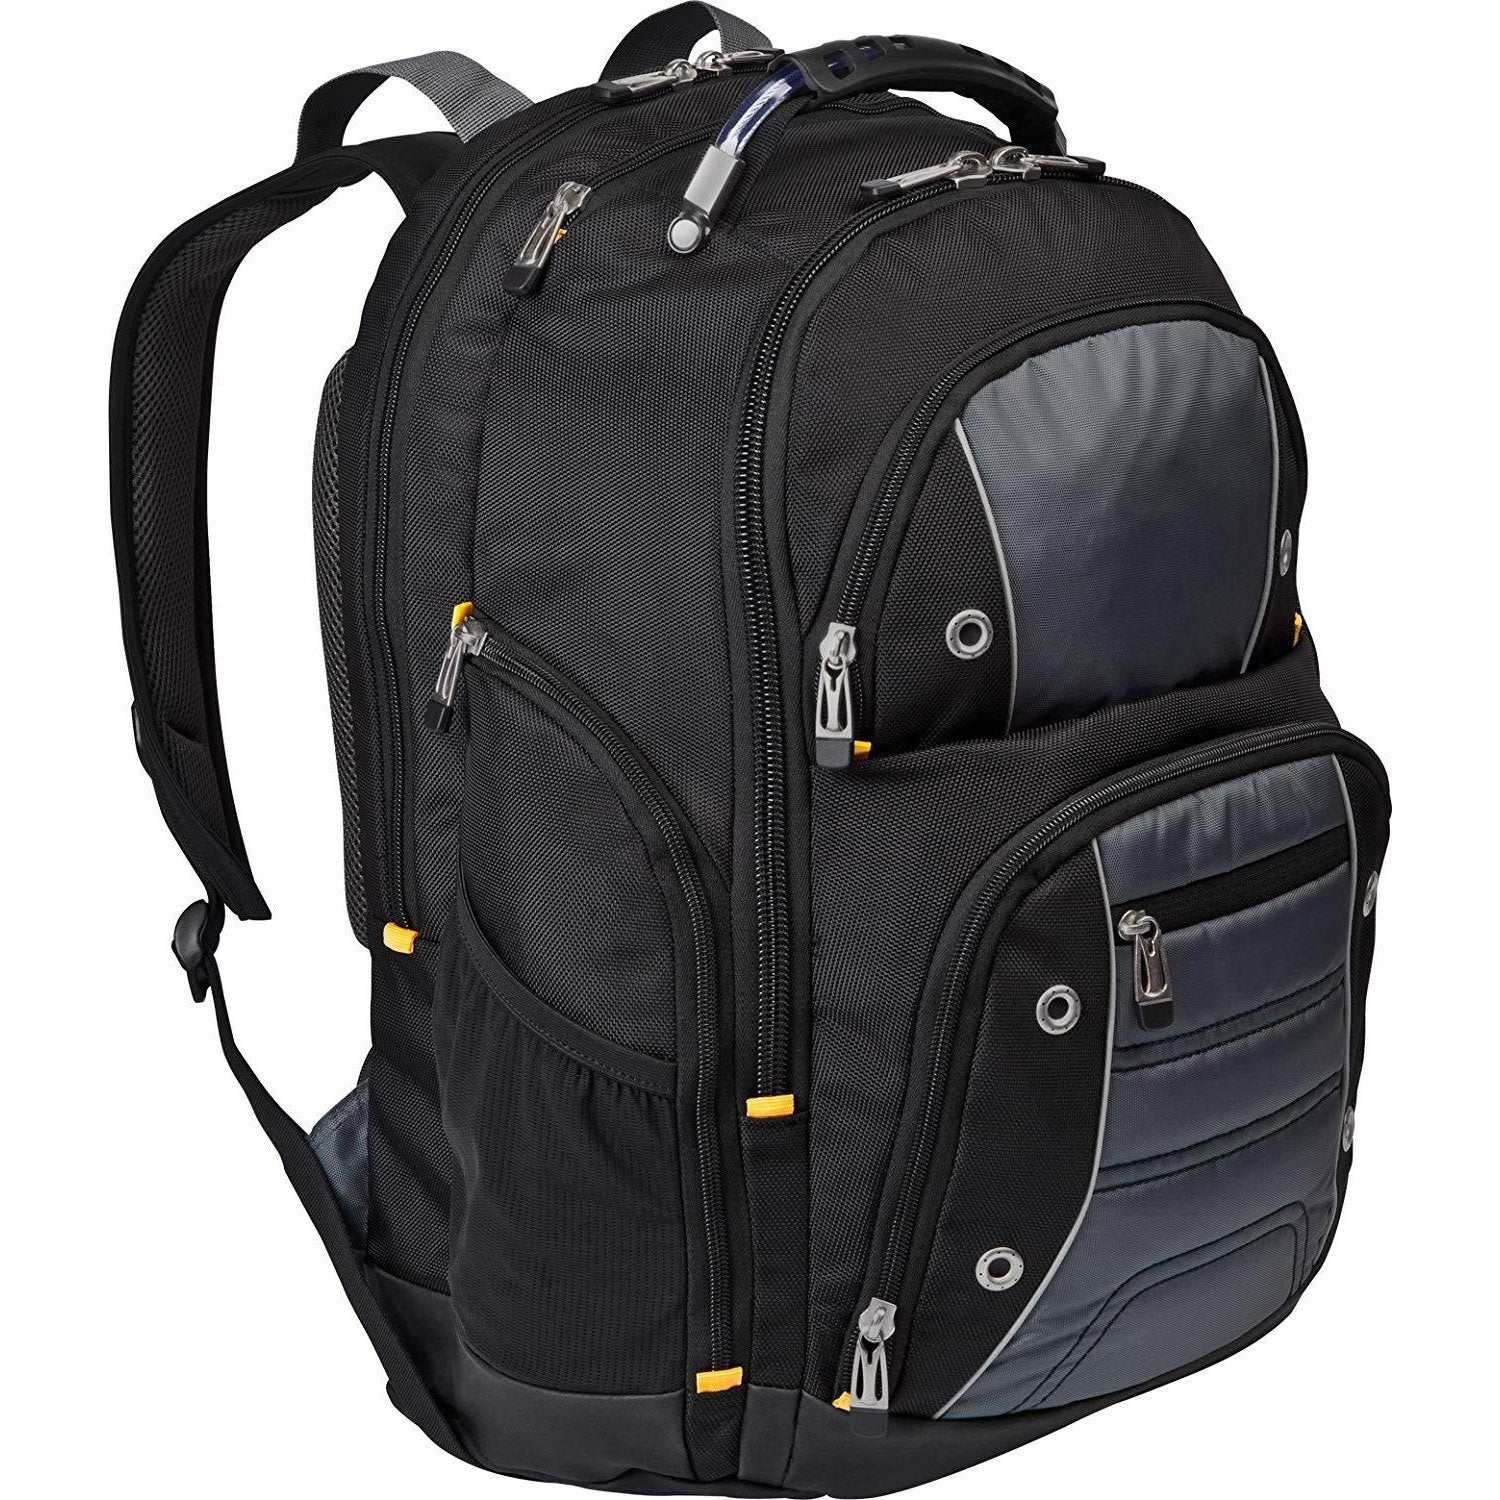 Backpack for 17-Inch Laptop, Black/Gray